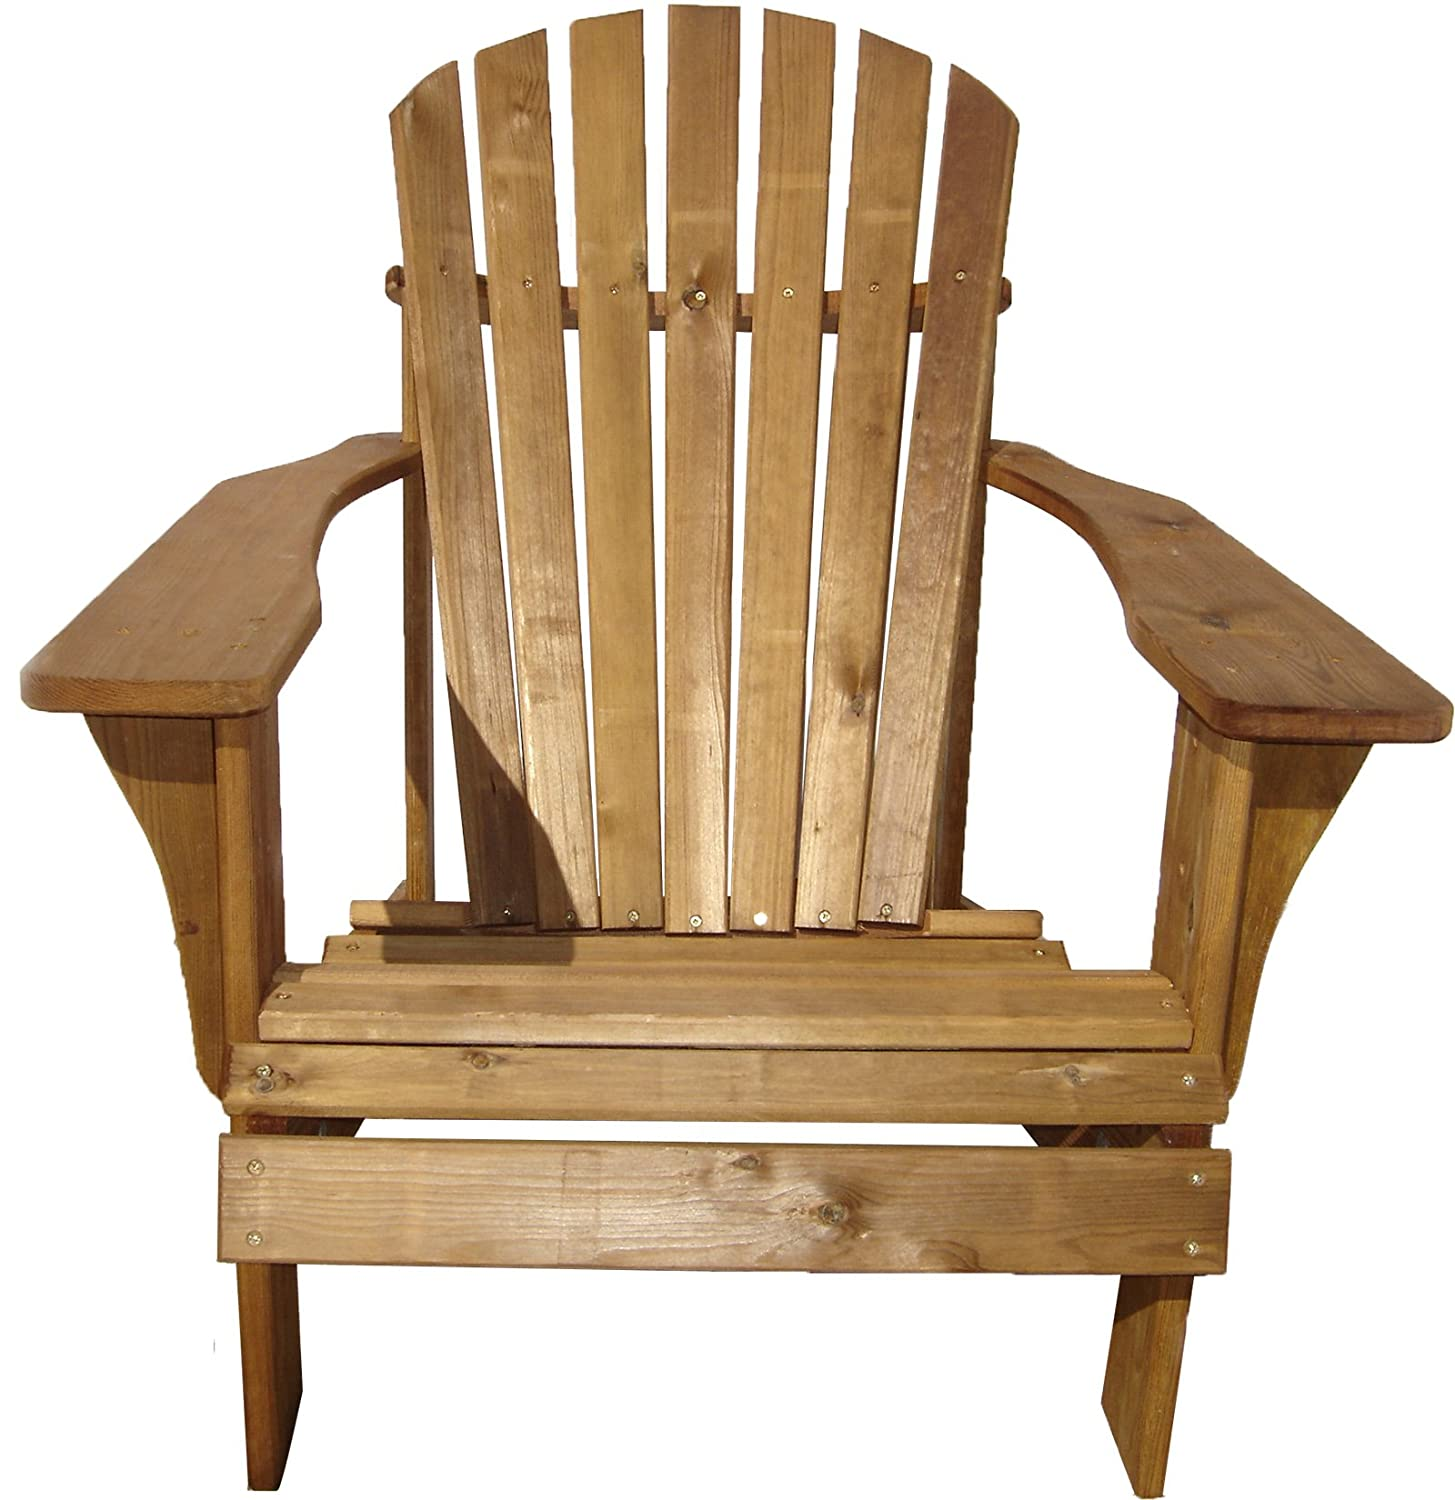 Adirondack Chair Kit Amazon Garden & Outdoors